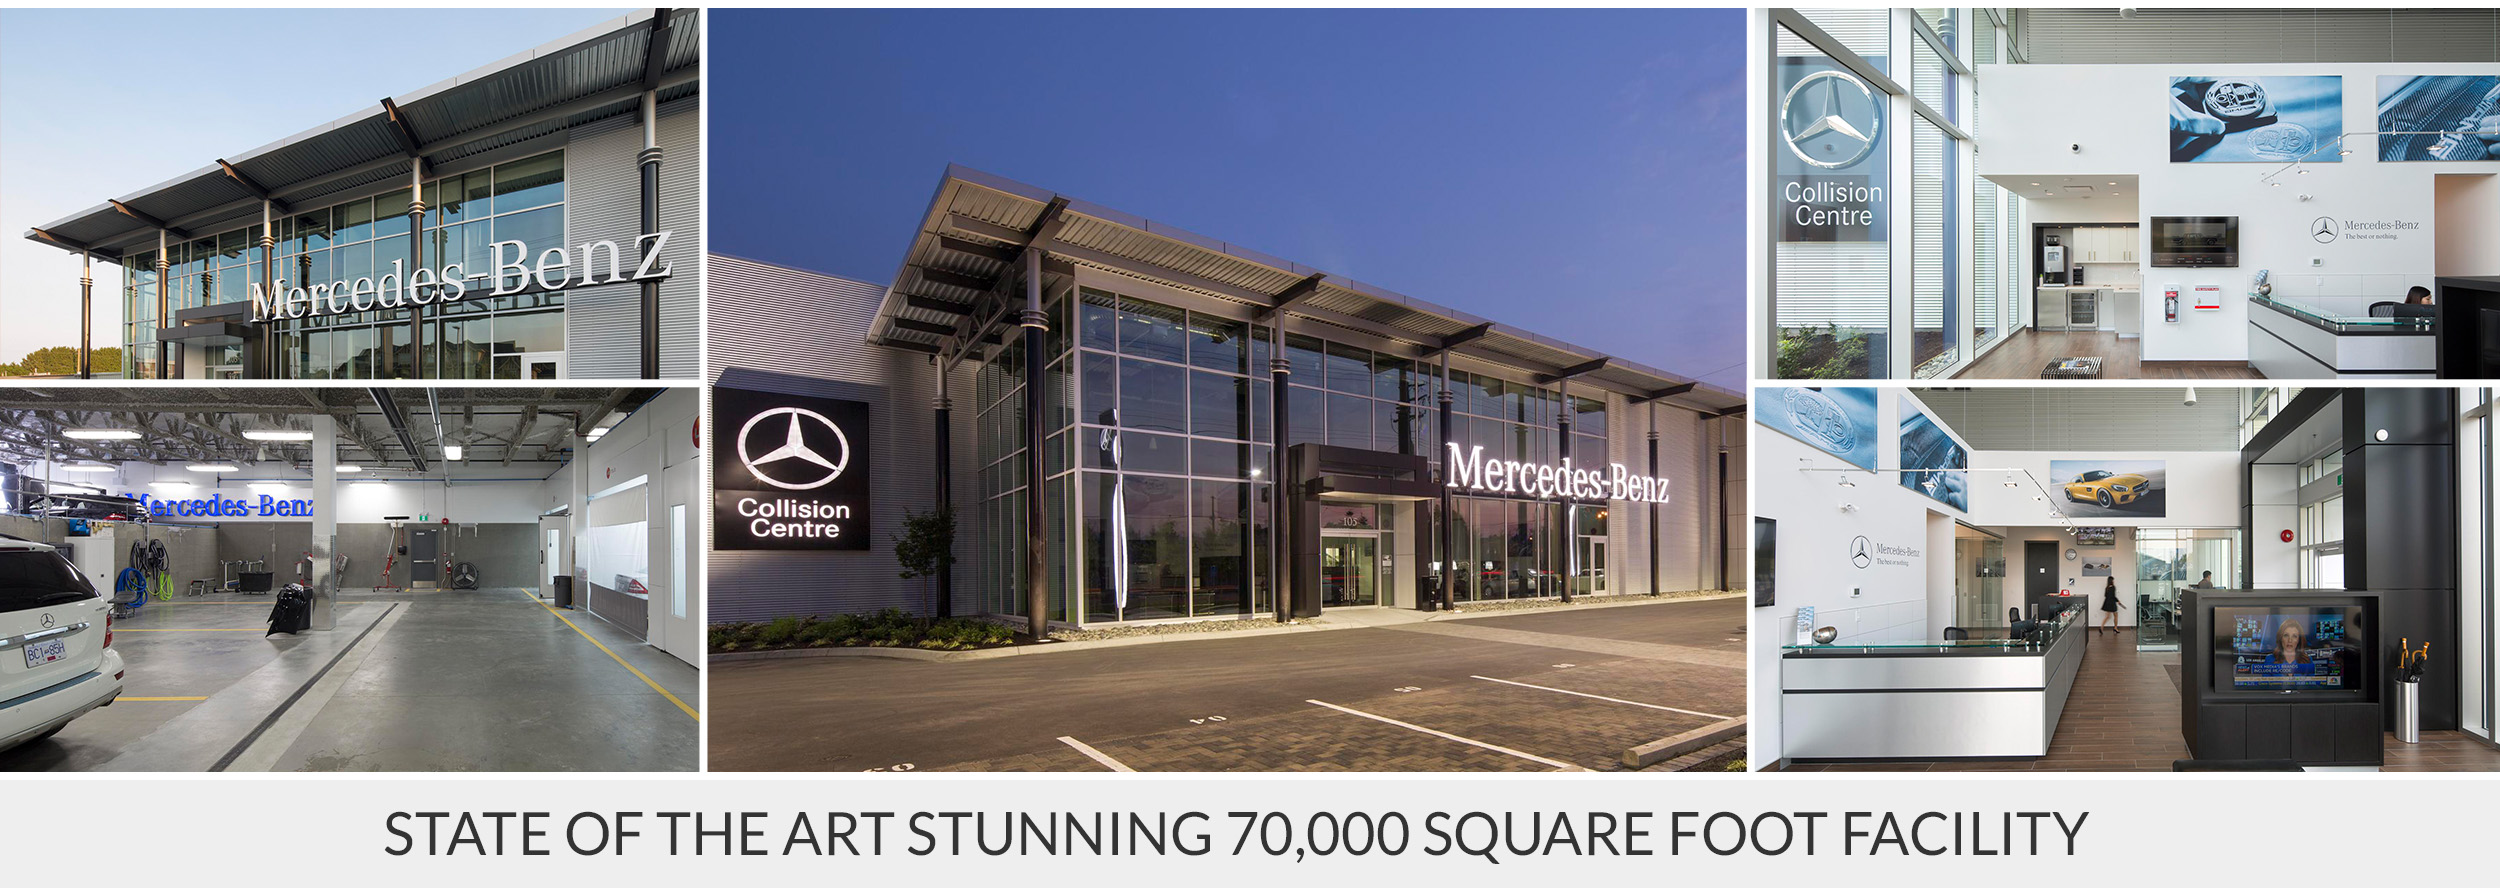 Mercedes benz collision centre richmond mercedes for Mercedes benz richmond